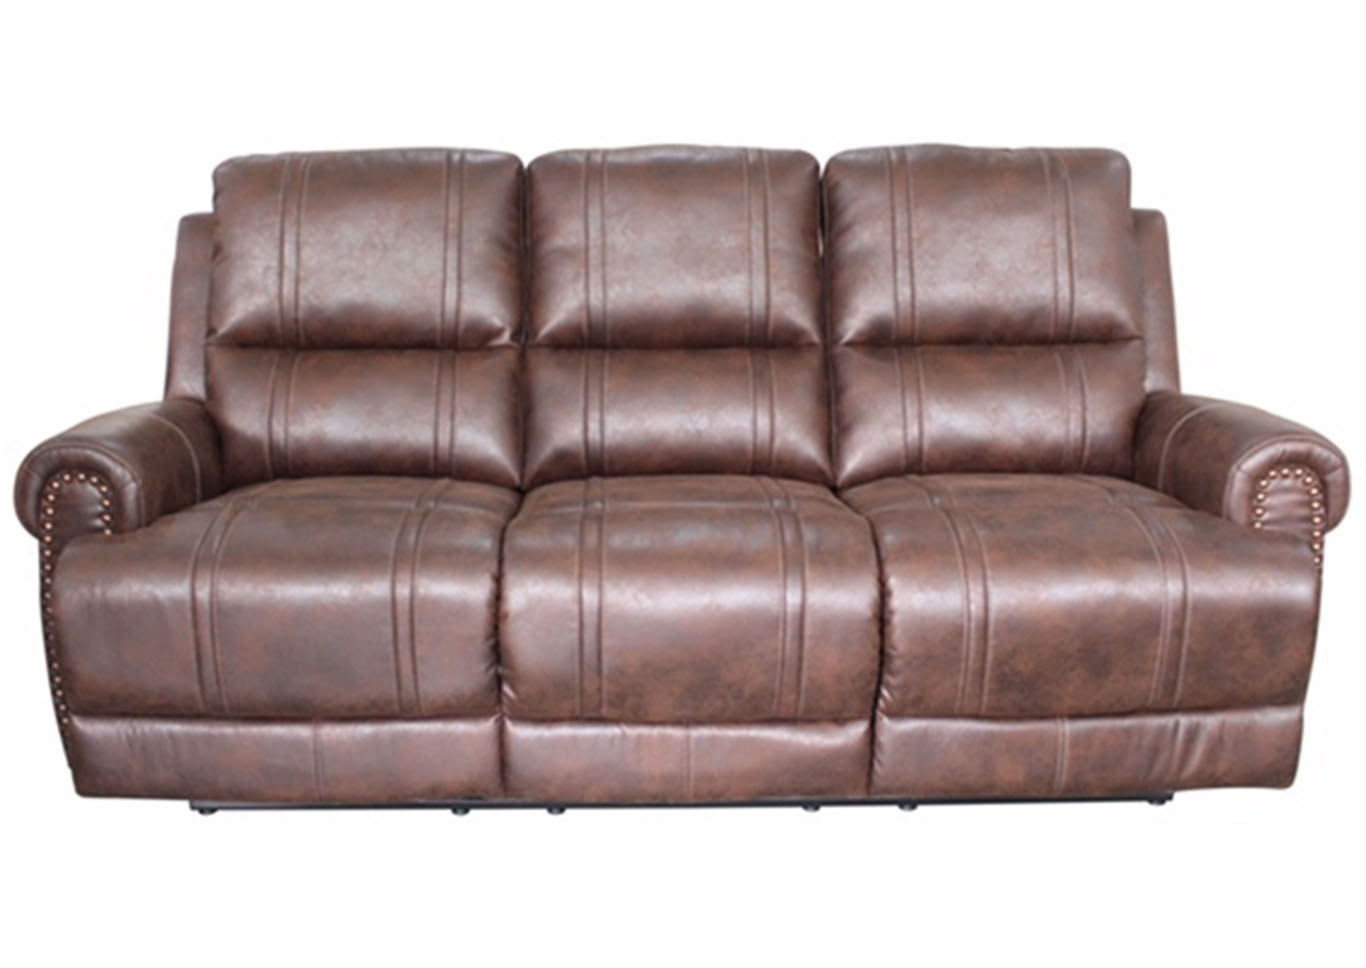 Best Buy Furniture and Mattress Anaheim Reclining Leather Sofa